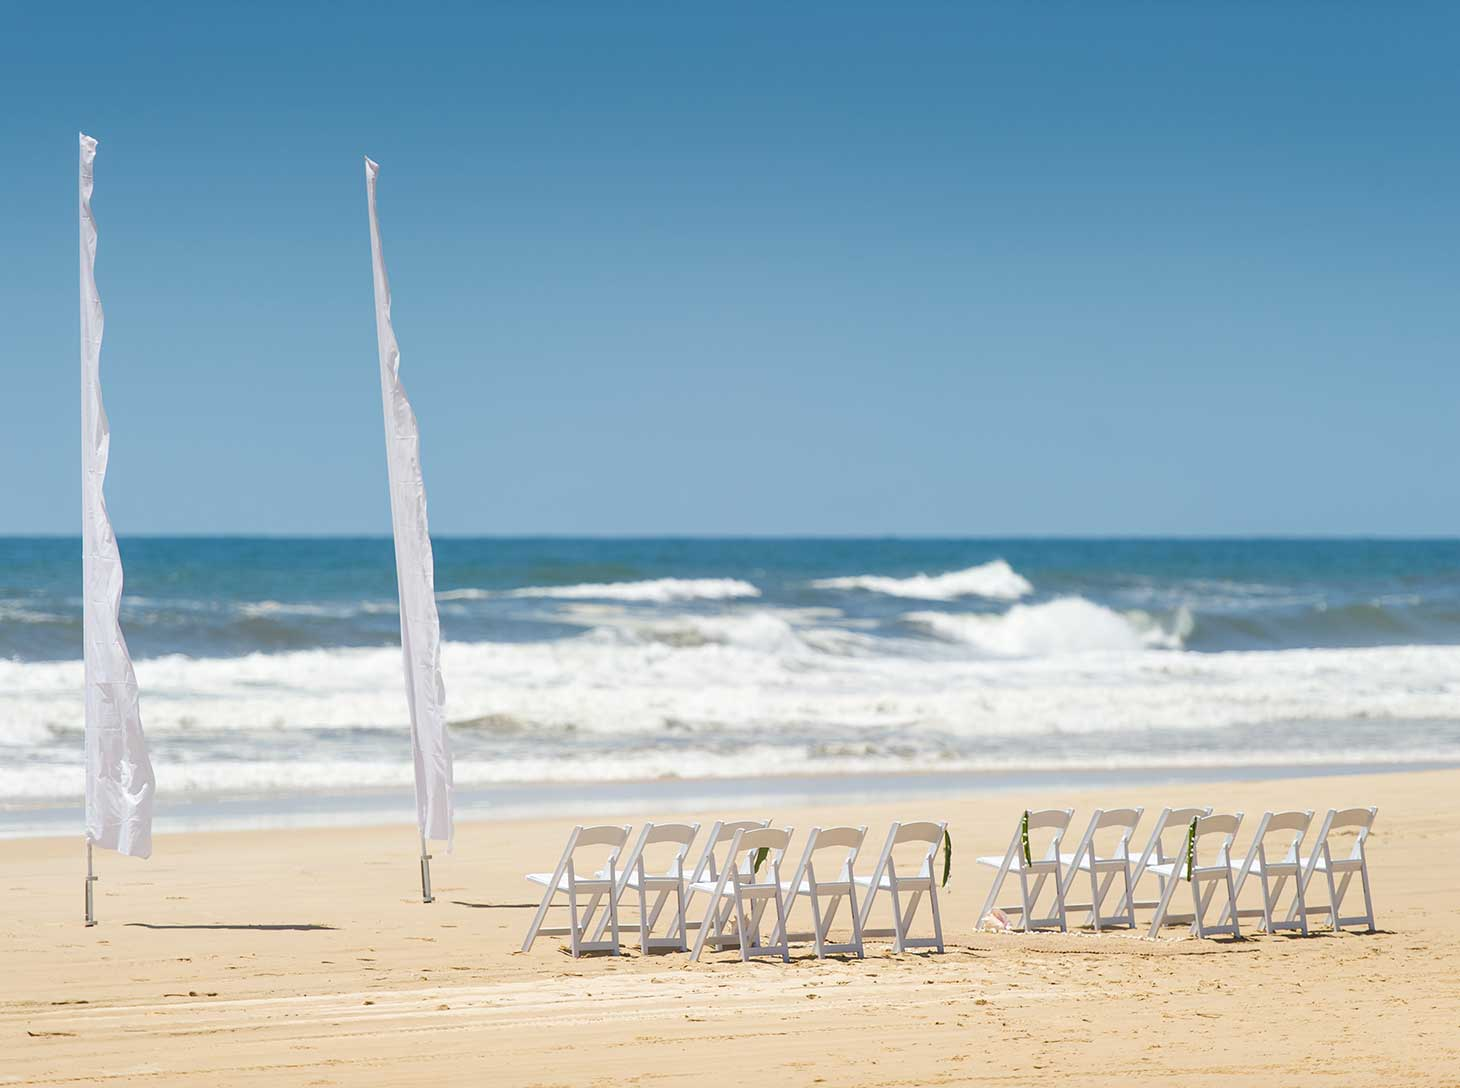 Eurong Beach Resort 75 Mile Beach Wedding Ceremony